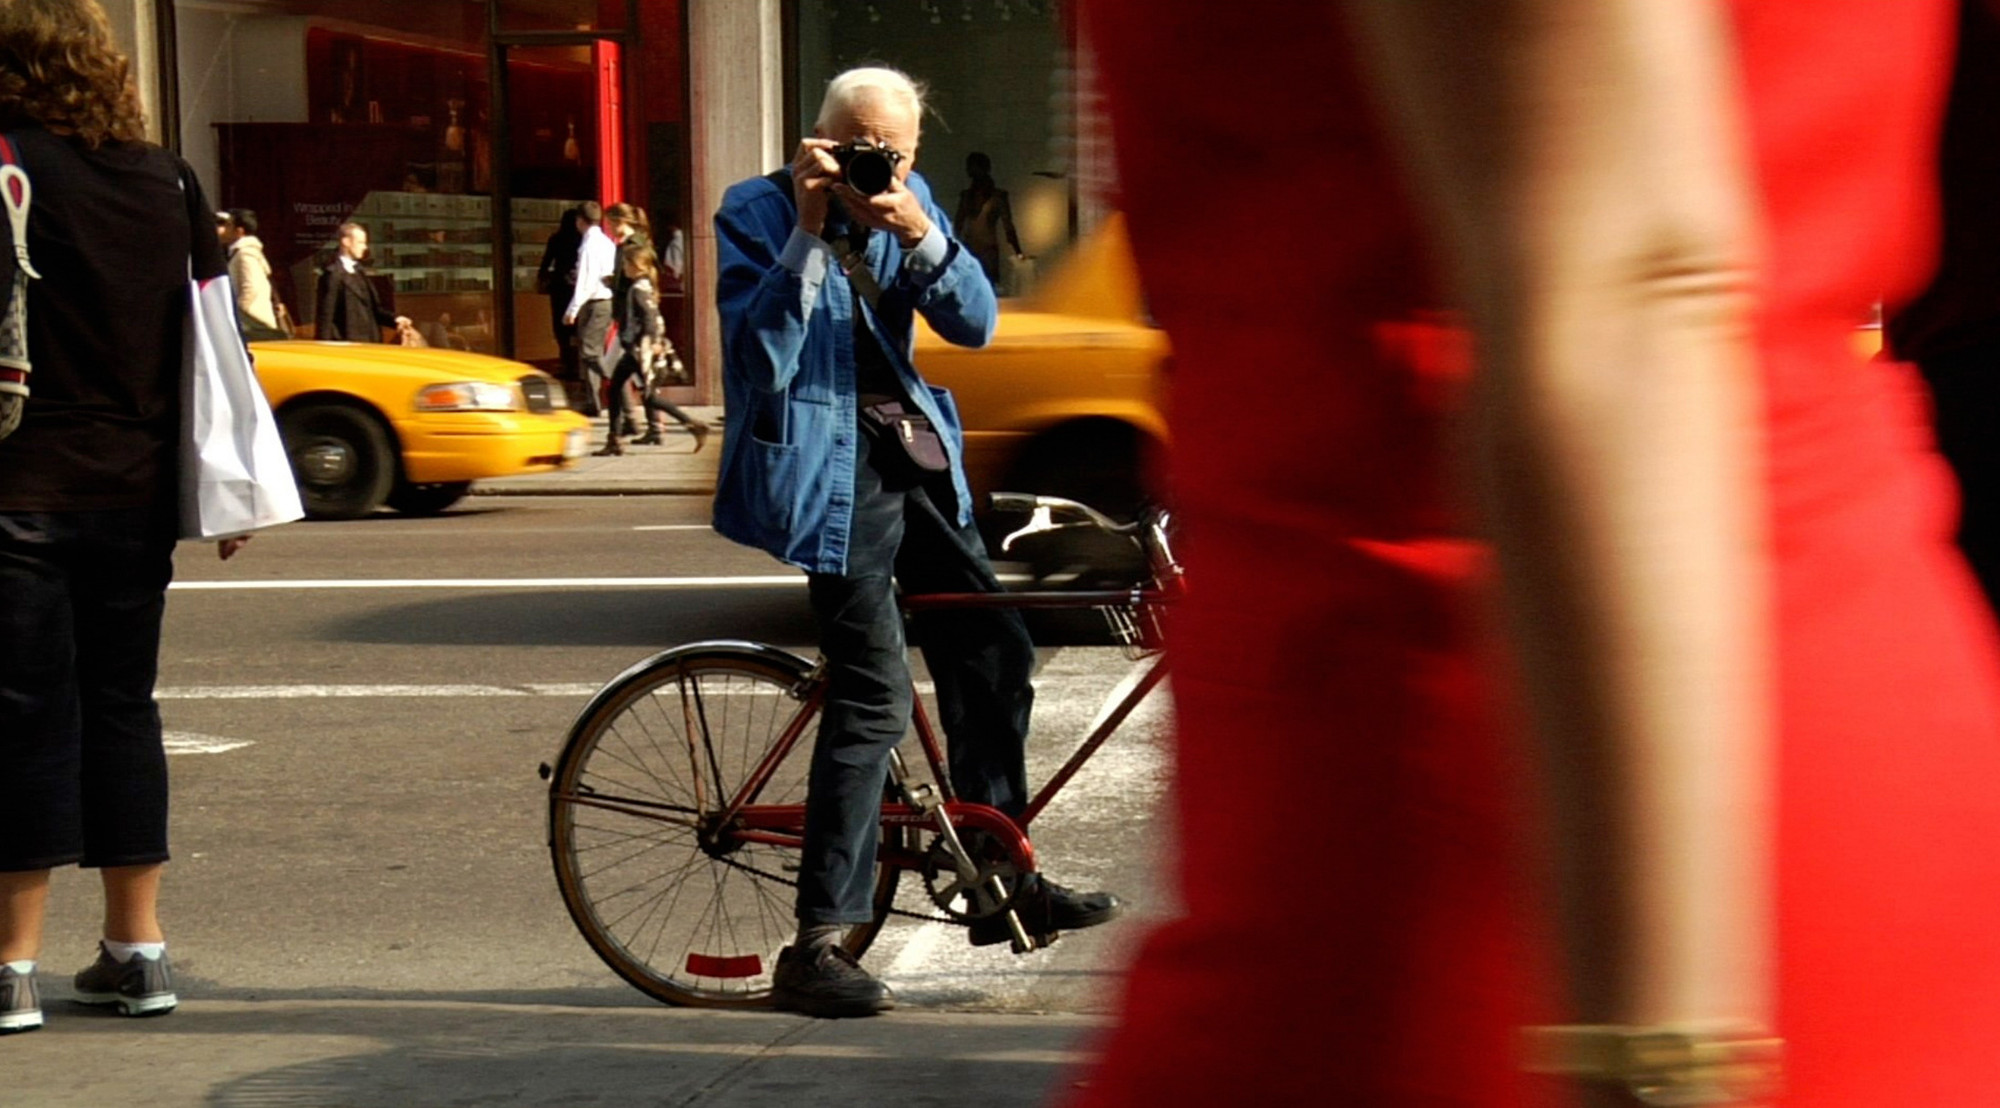 Bill Cunningham New York. 2010. USA. Directed by Richard Press. Courtesy of First Thought Films/Zeitgeist Films